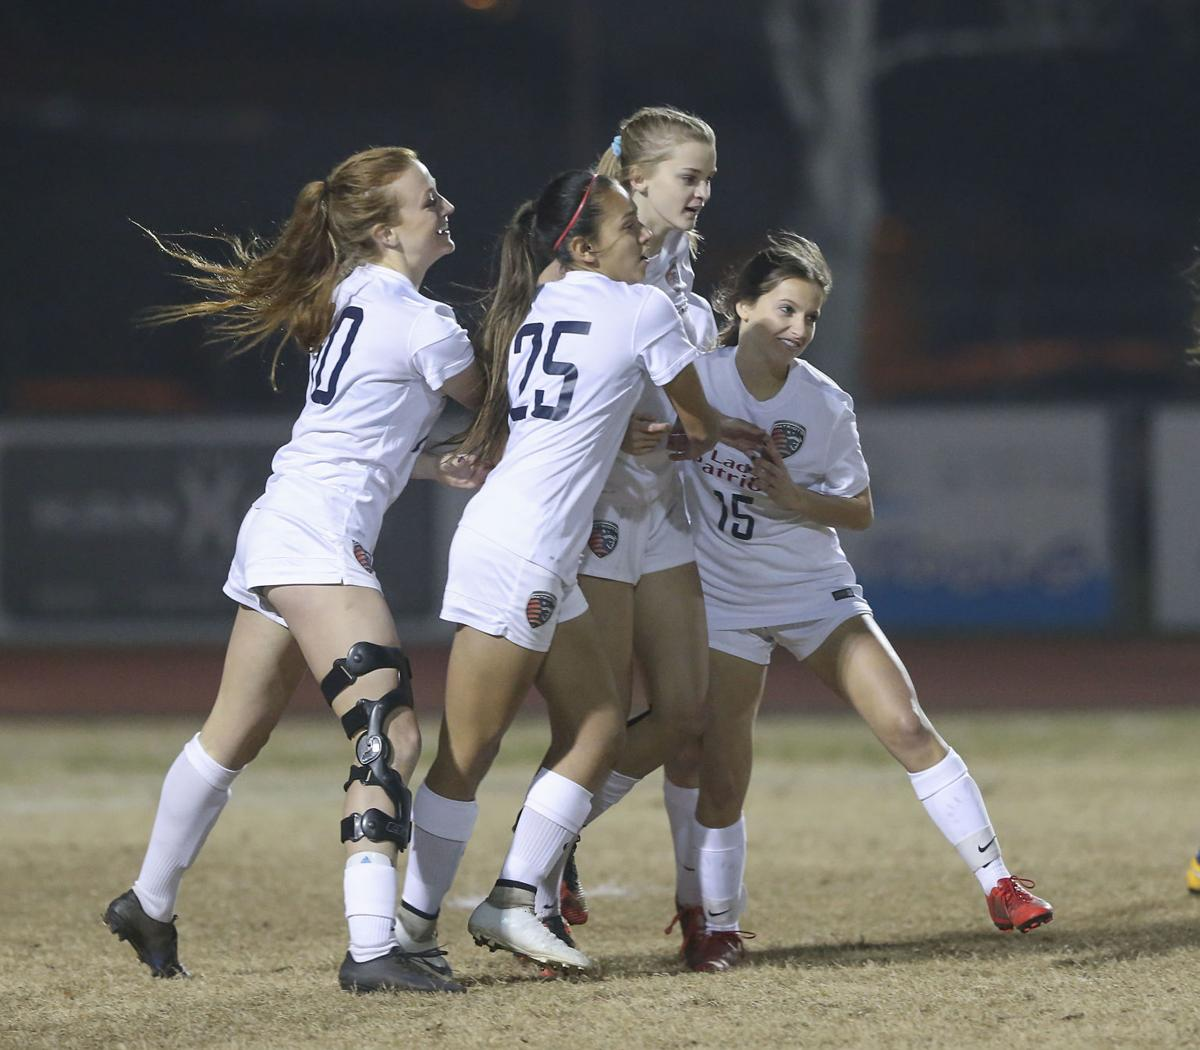 Liberty, Independence top seeds in Central Section girls soccer brackets